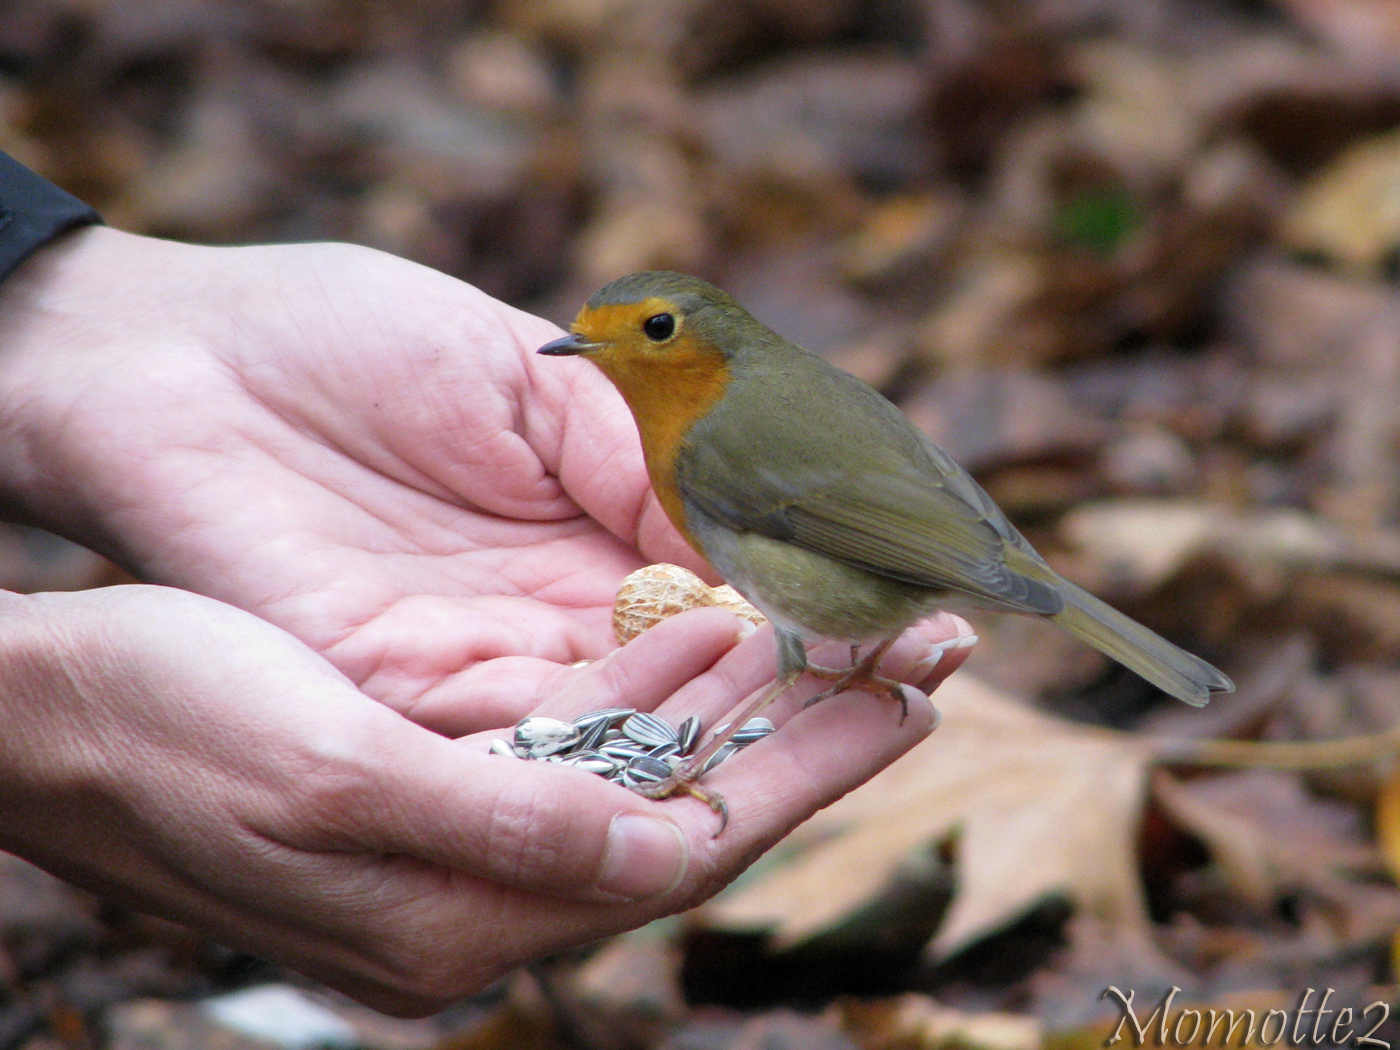 Friendly robin in my hand by Momotte2